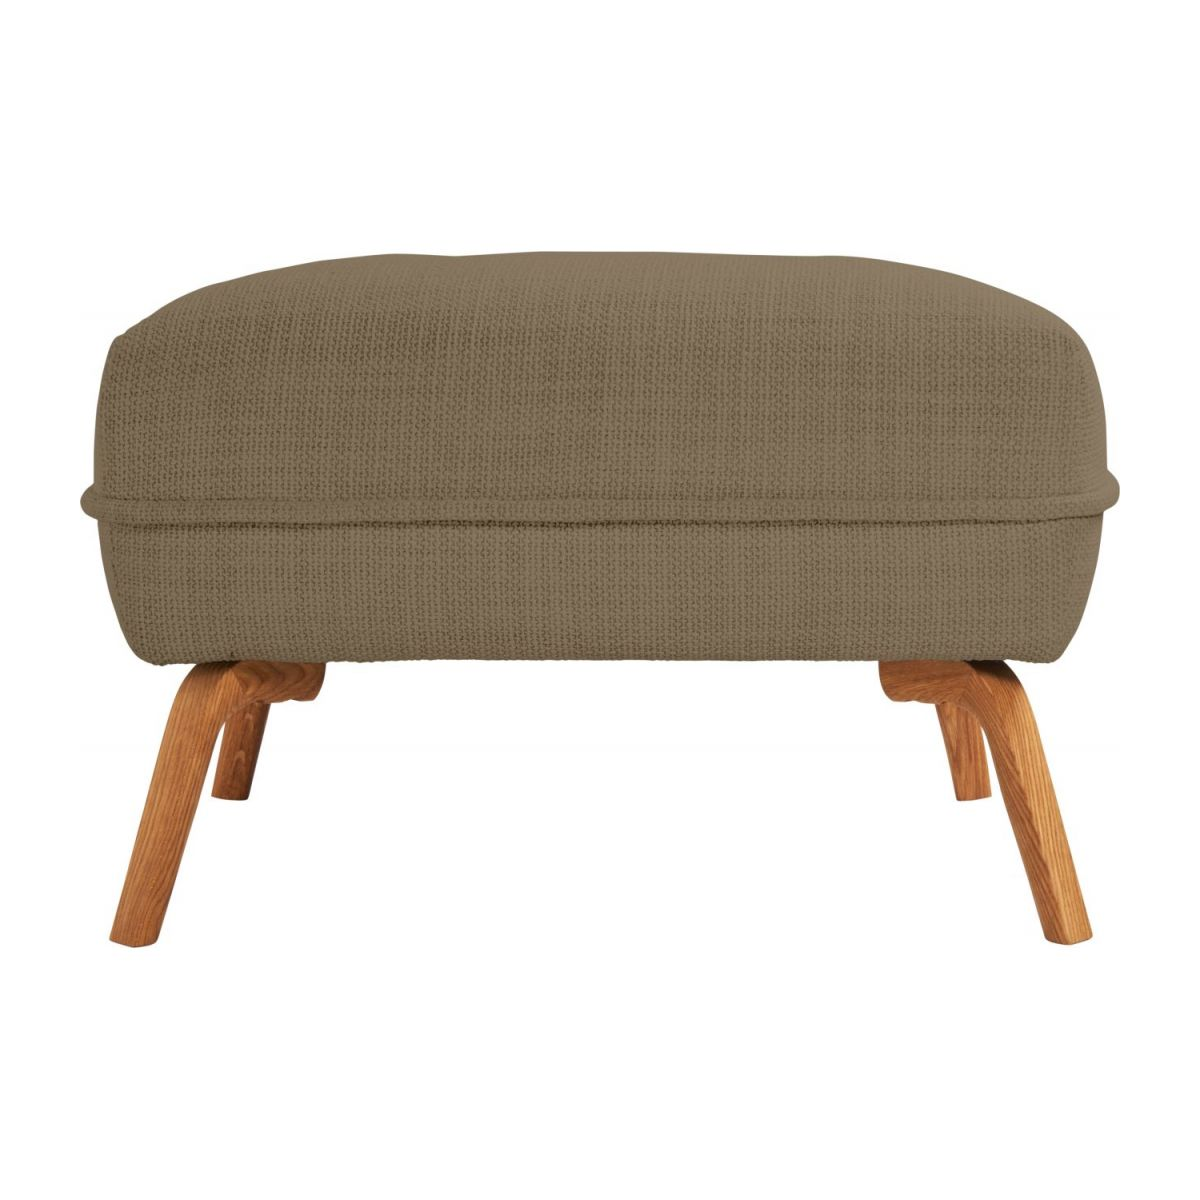 Footstool in Fasoli fabric, jatoba brown and oak legs n°3